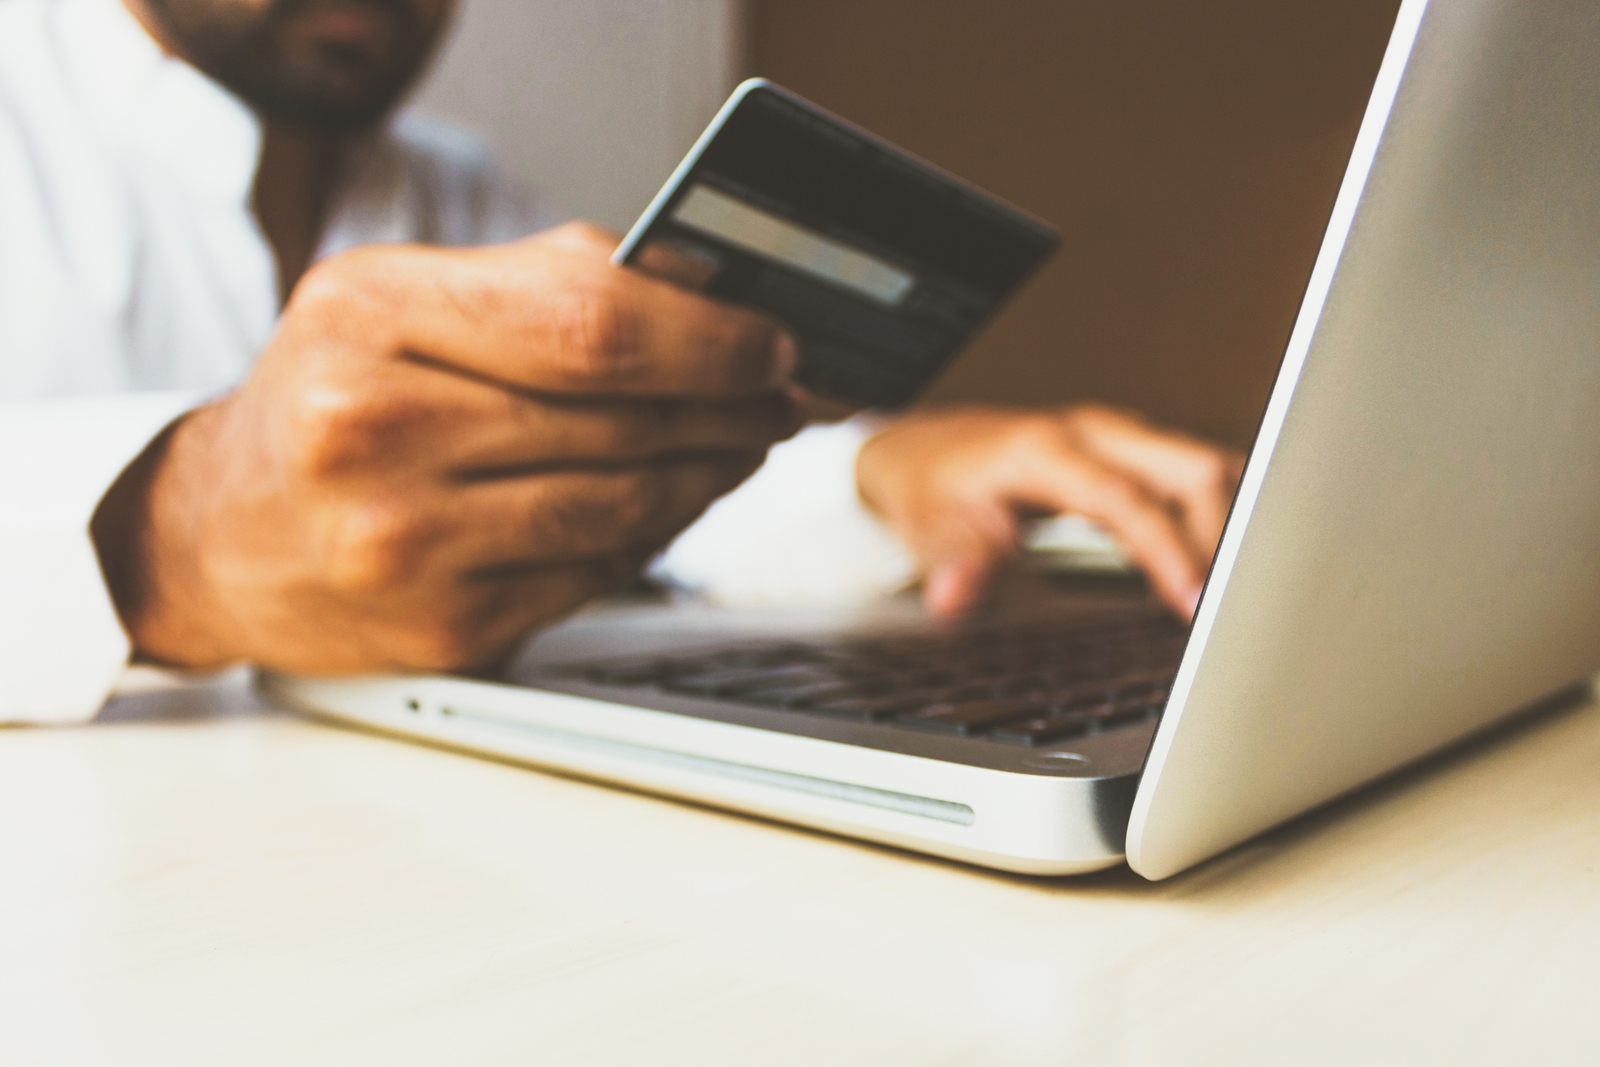 Further security for online card payments